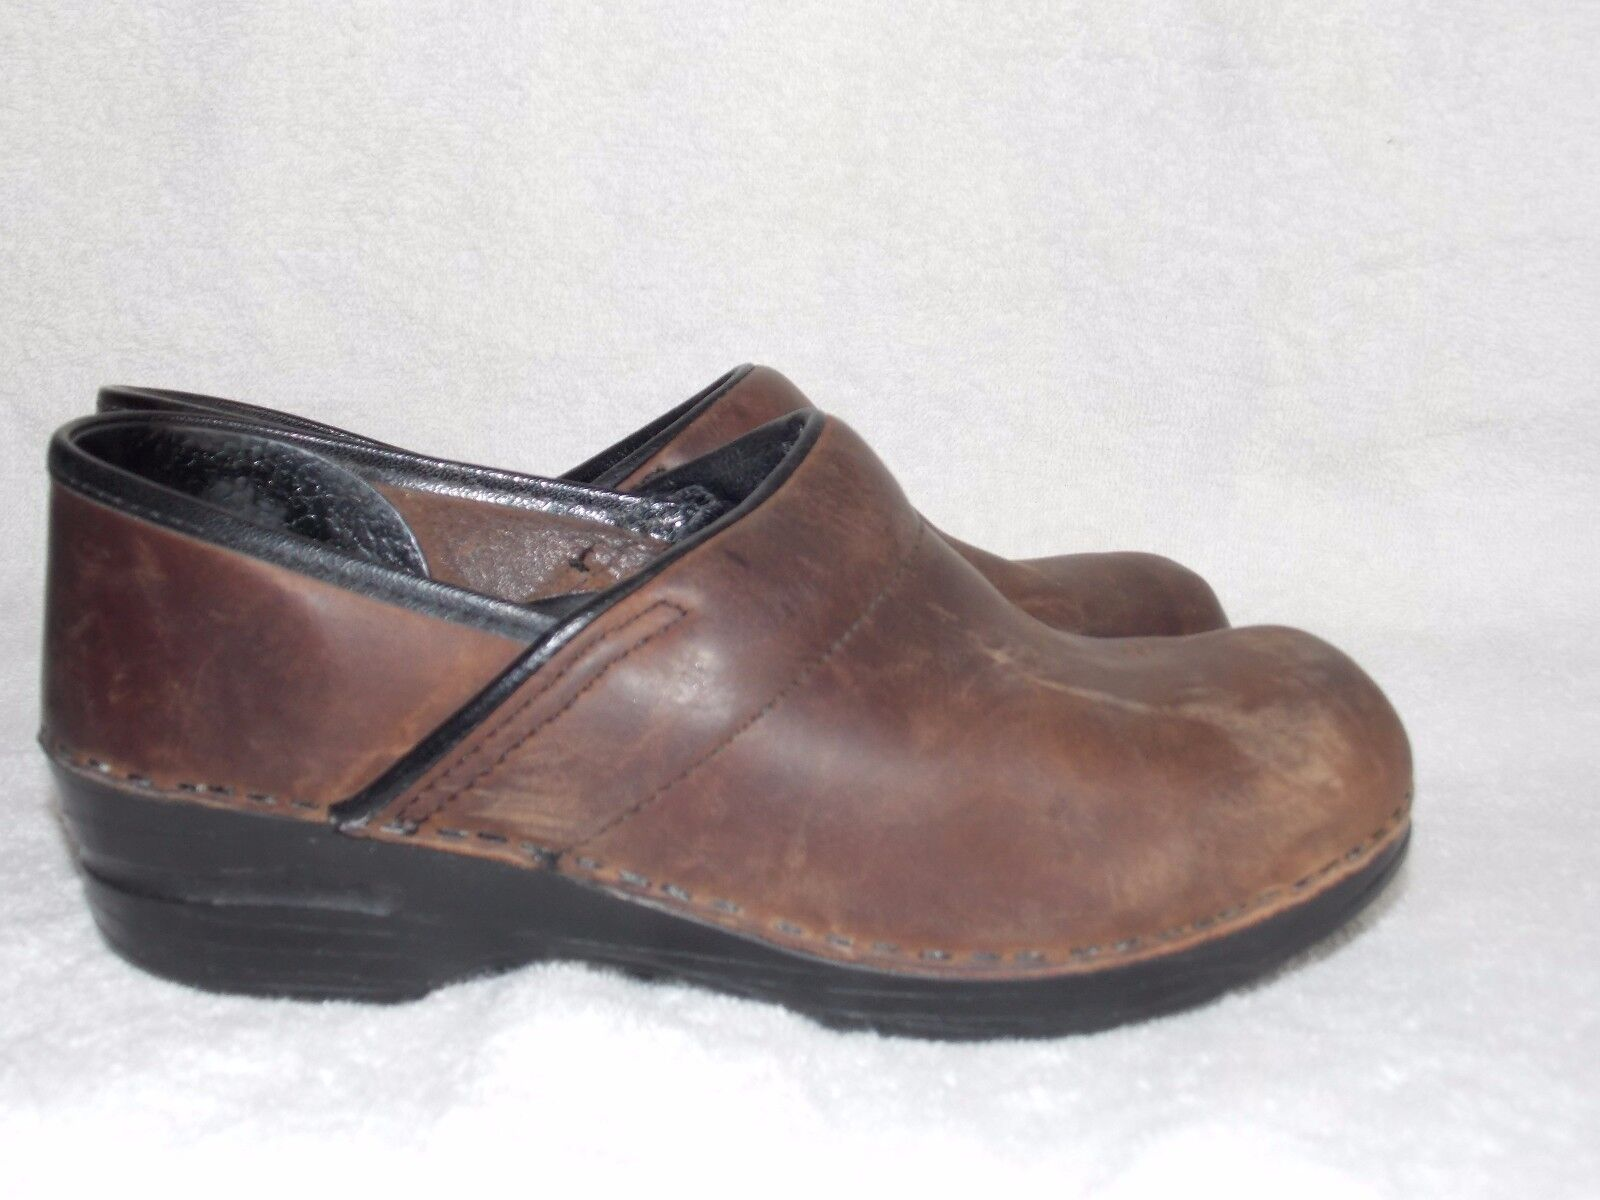 Dansko Brown Oiled Brown Leather Slip On MULES Clogs shoes For Women 37 7 Used